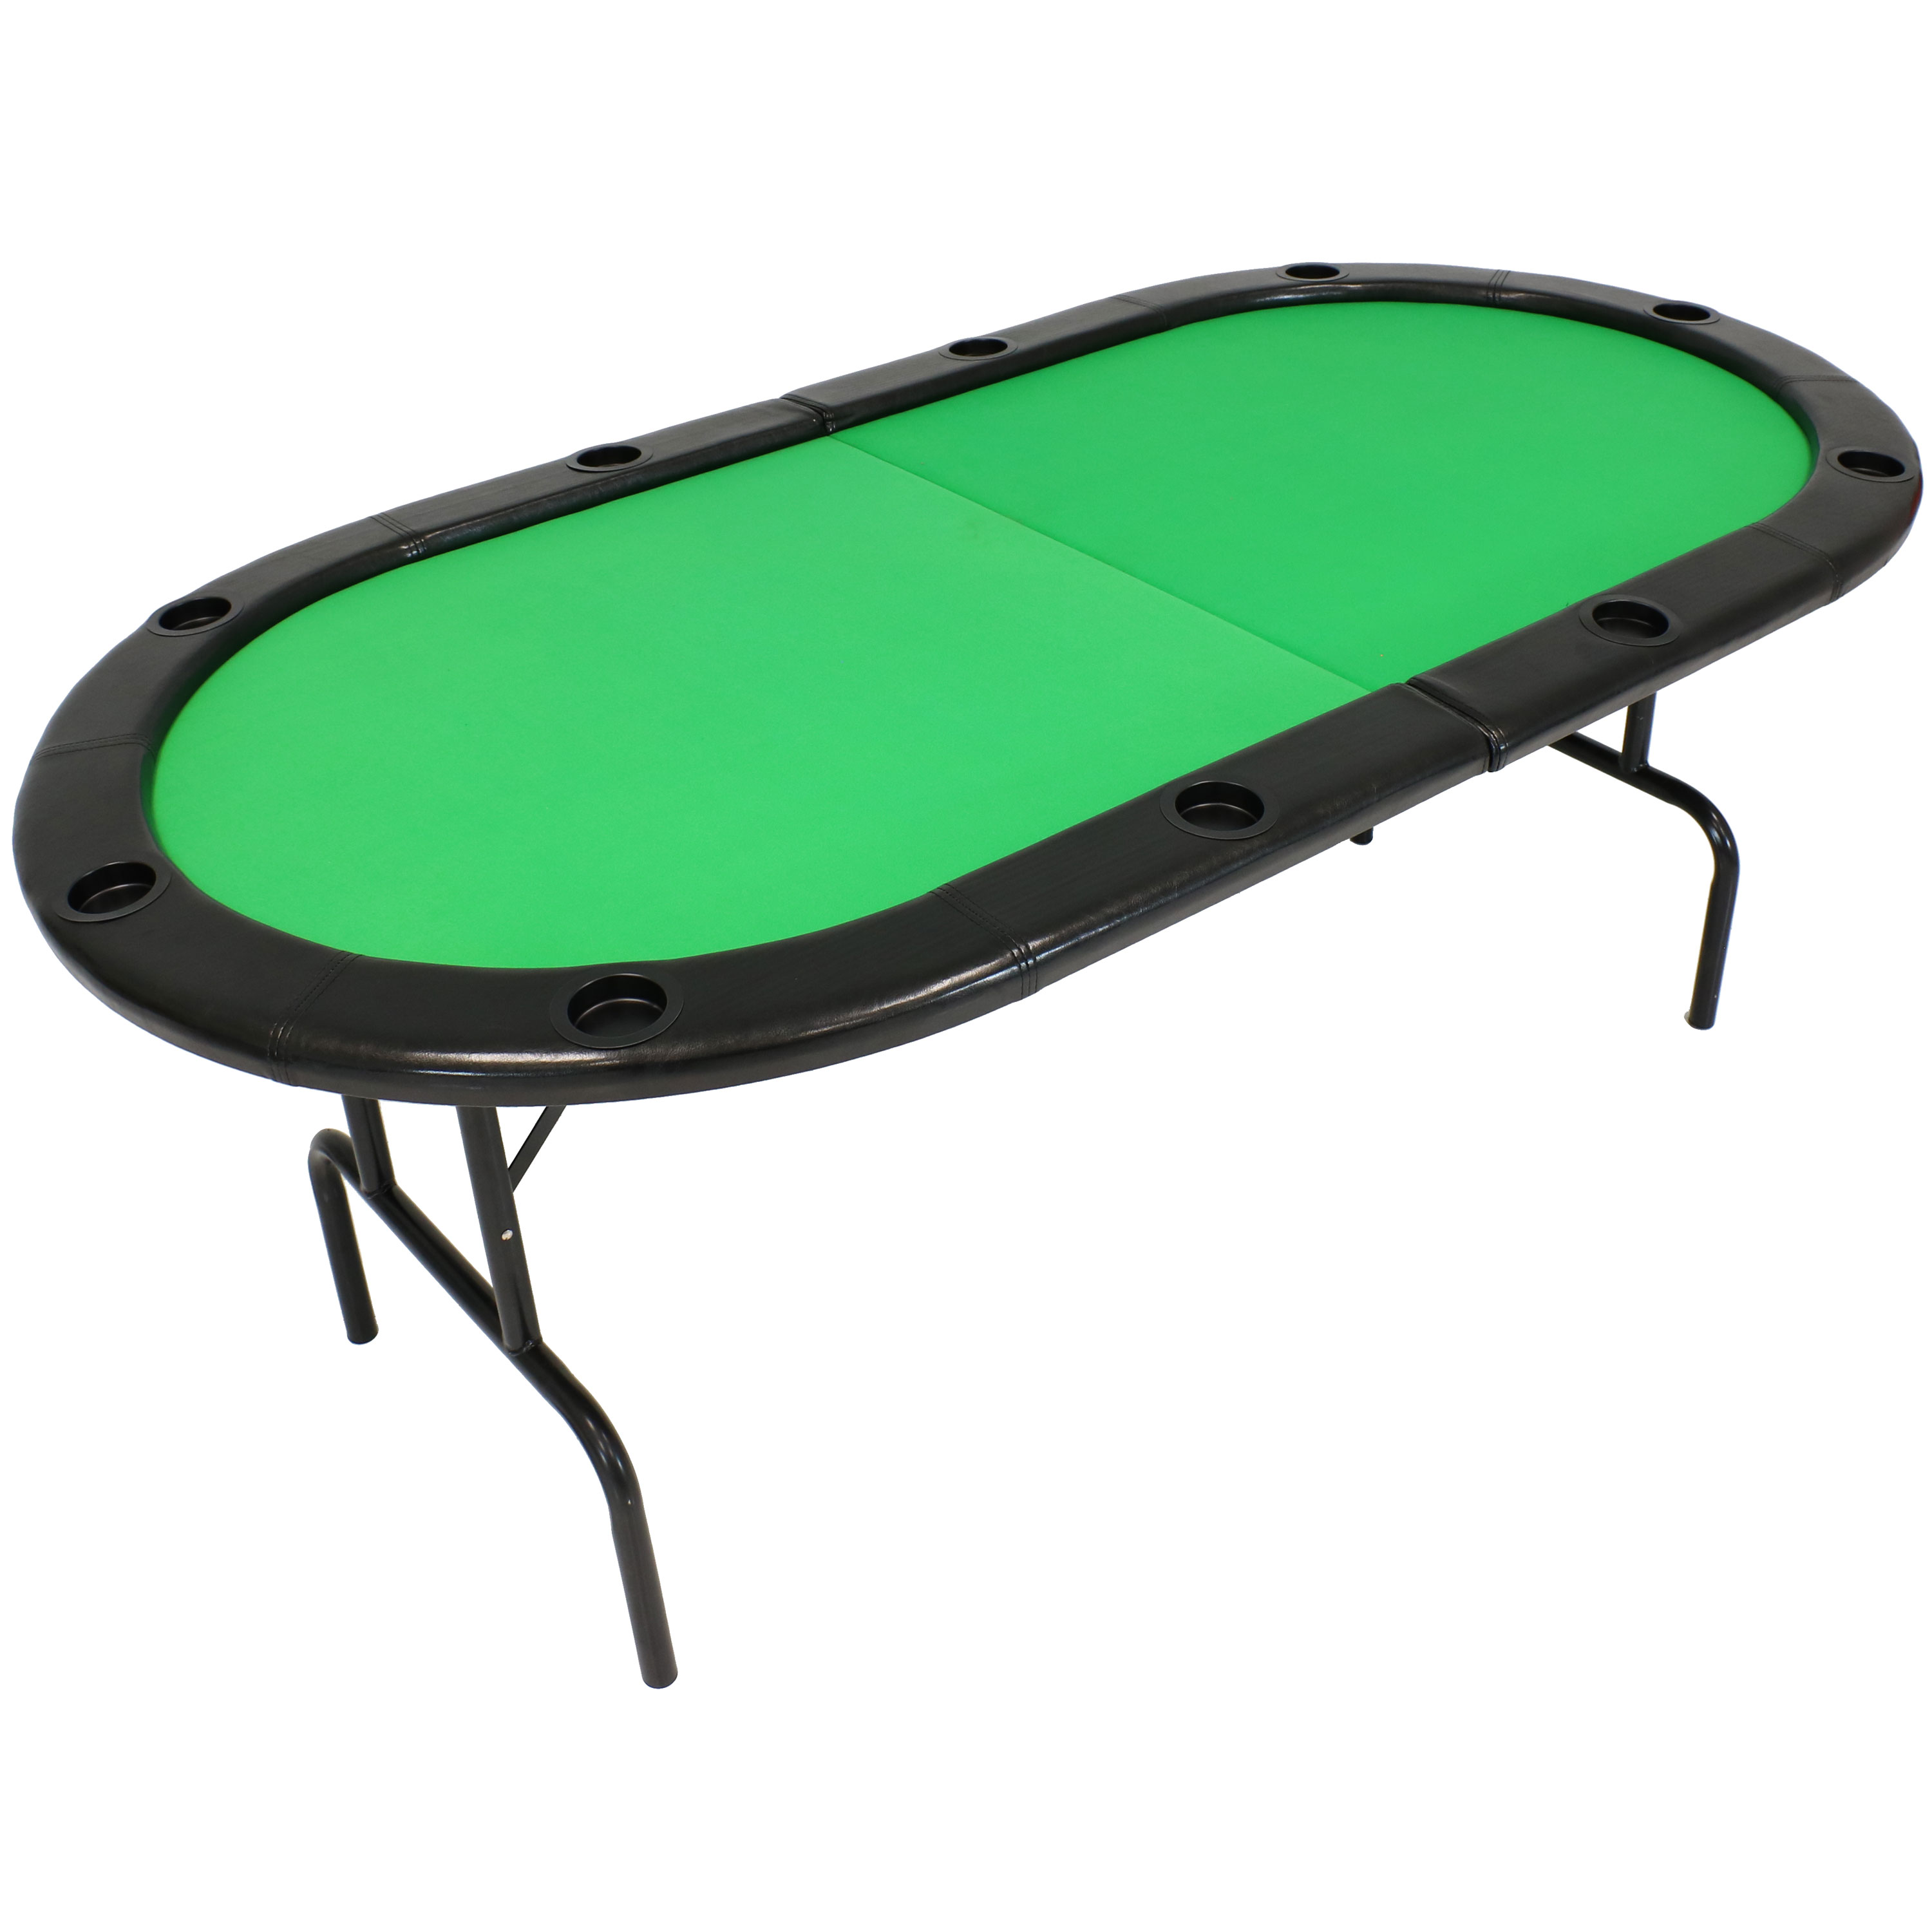 Folding Oval Poker Table Players Cushioned Rail Built In Cup Holders